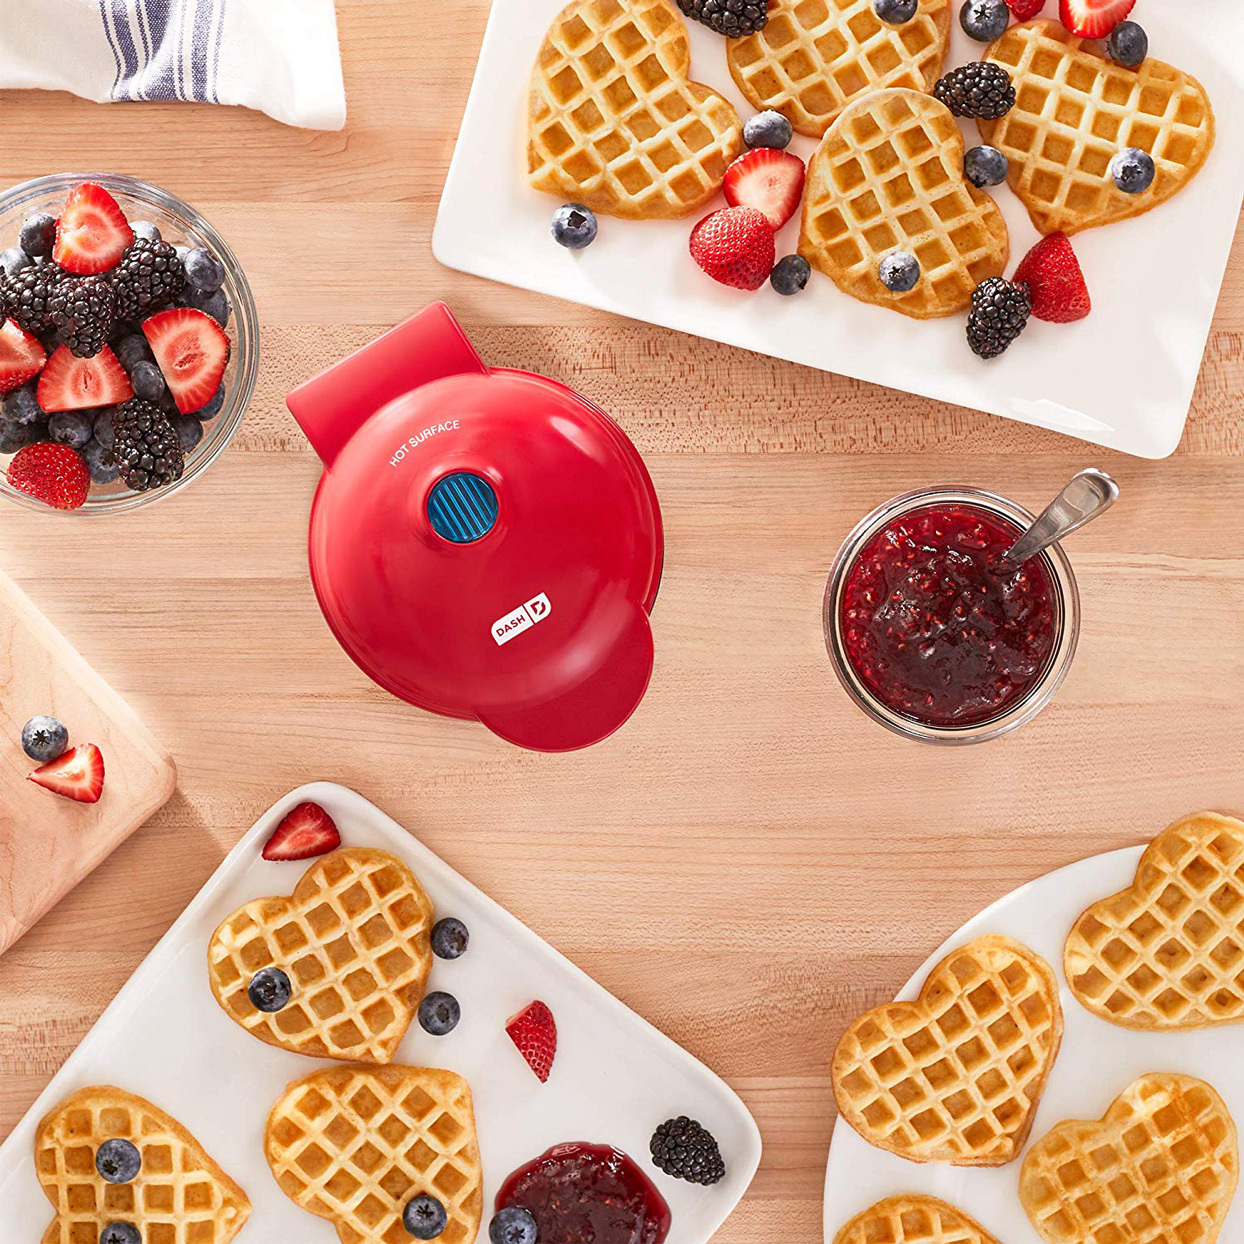 This Heart-Shaped Waffle Maker Is Perfect for Valentine's Day—and It's Only $15